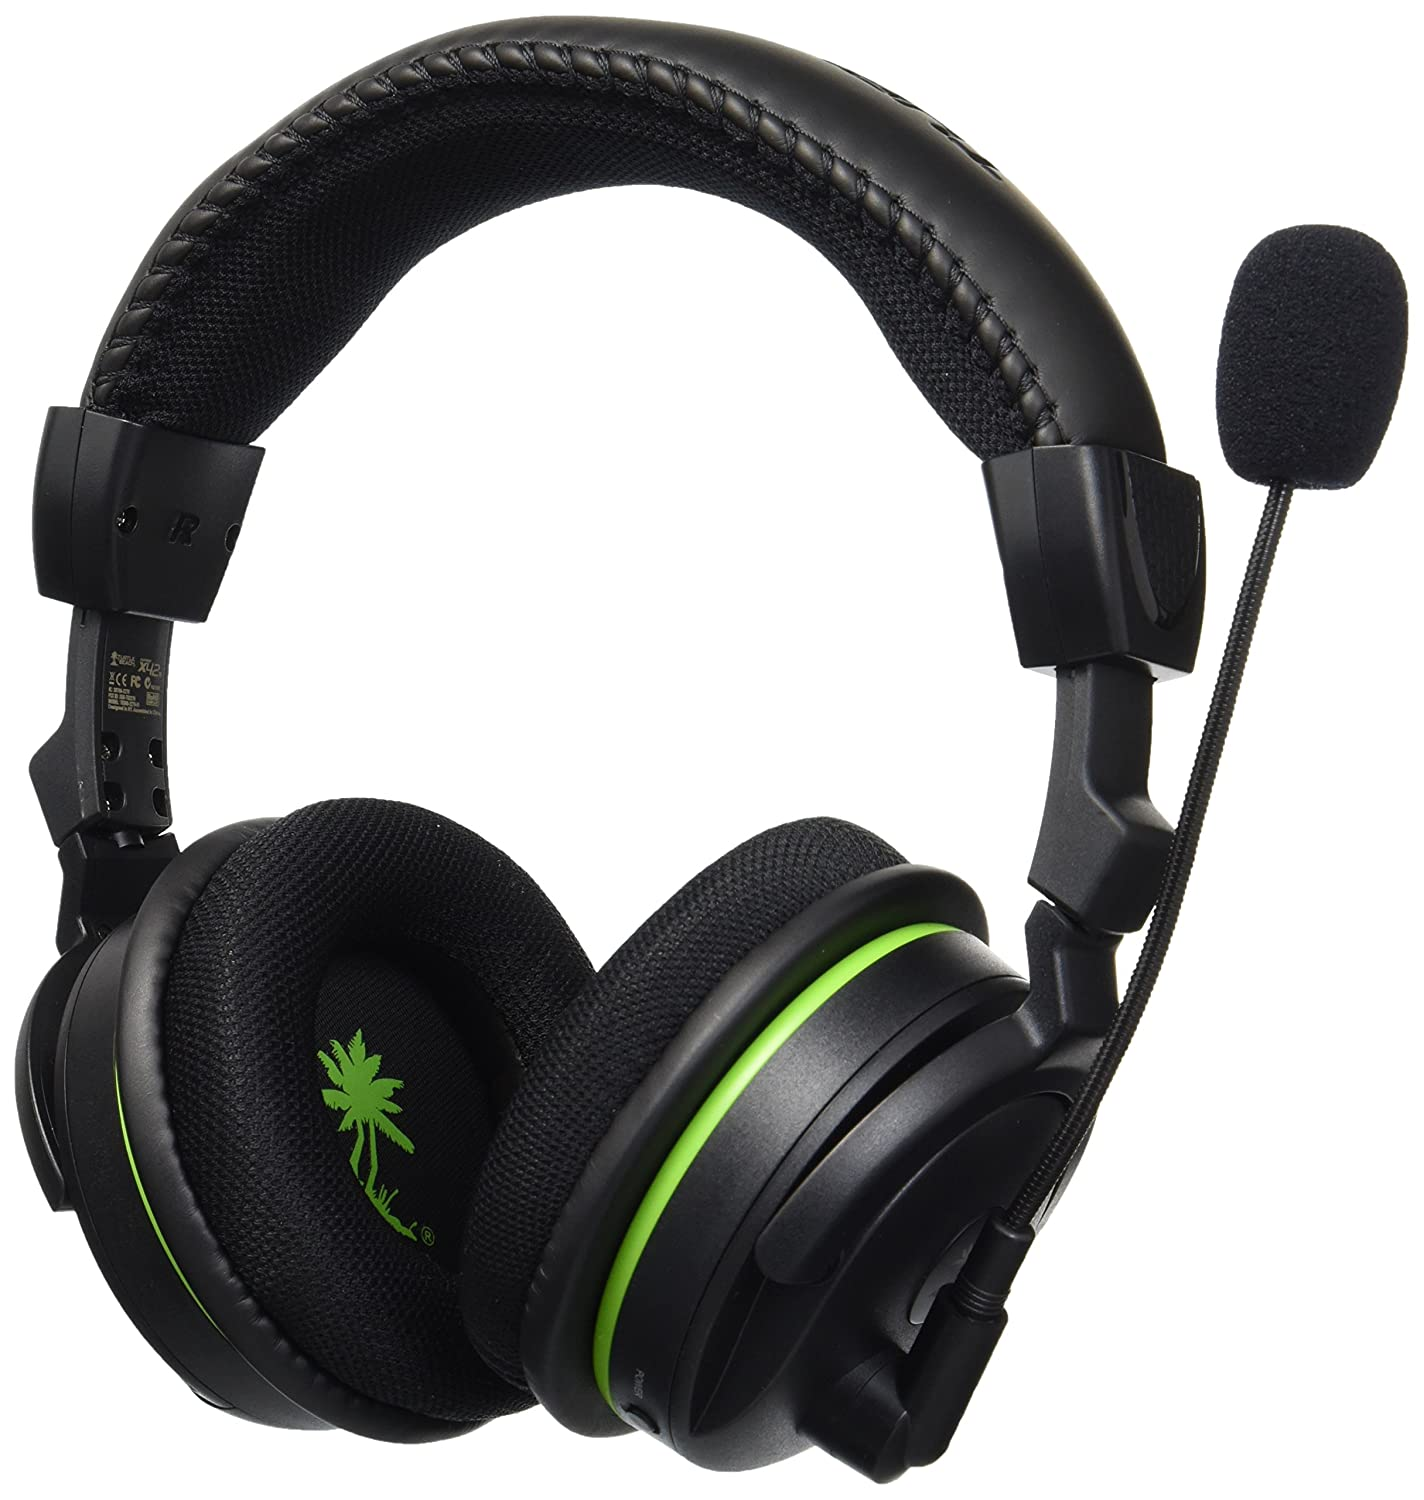 Turtle Beach - Ear Force X42 - Premium Wireless Gaming Headset with Dolby Surround Sound - Xbox 360 (Discontinued by Manufacturer)